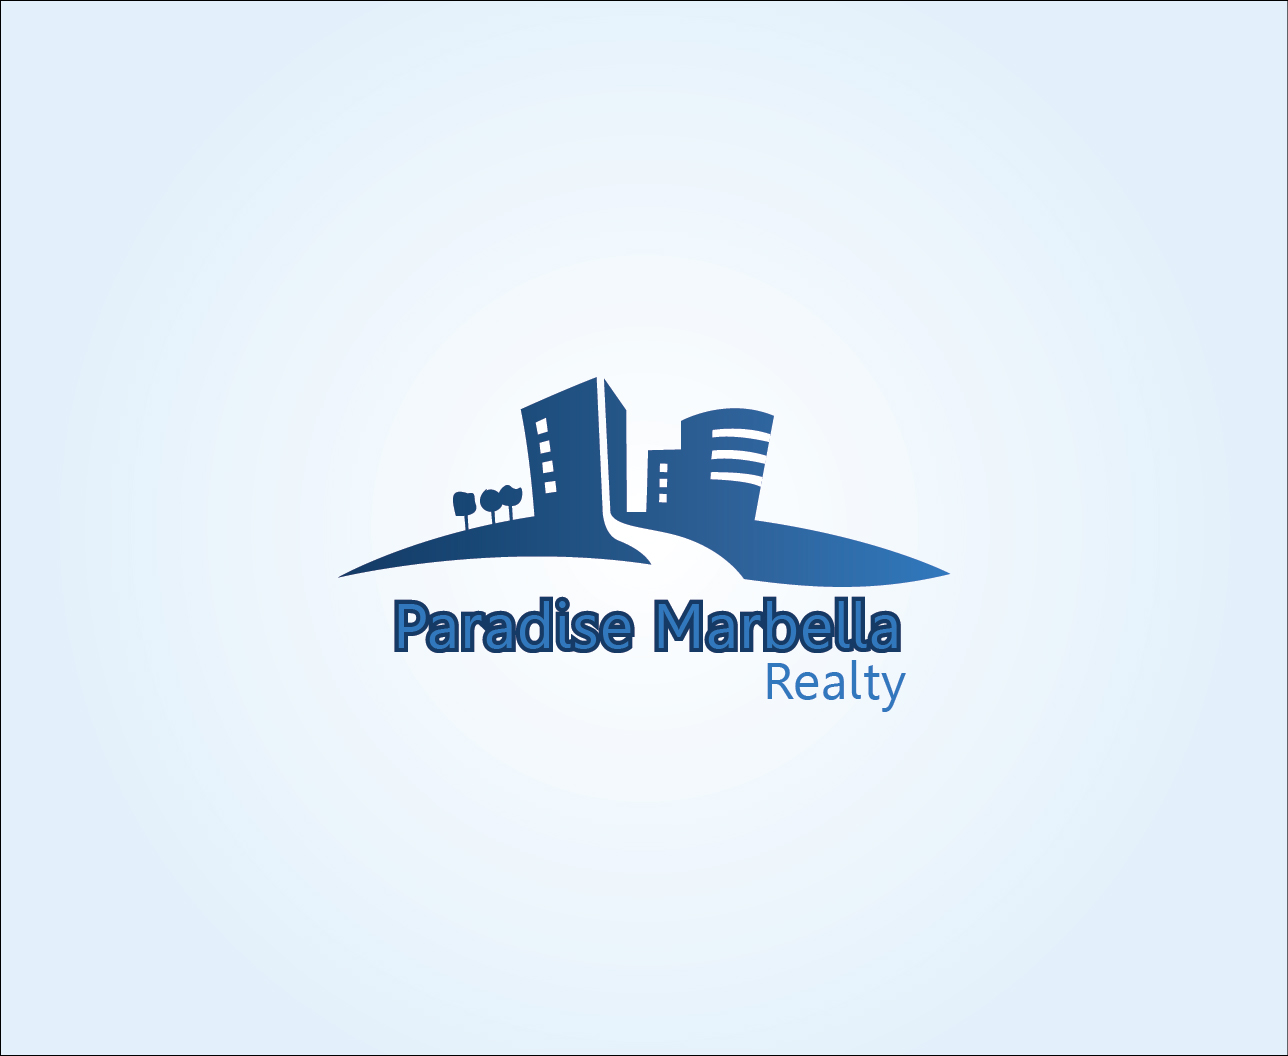 Logo Design by Derel Valarian - Entry No. 35 in the Logo Design Contest Captivating Logo Design for Paradise Marbella Realty.